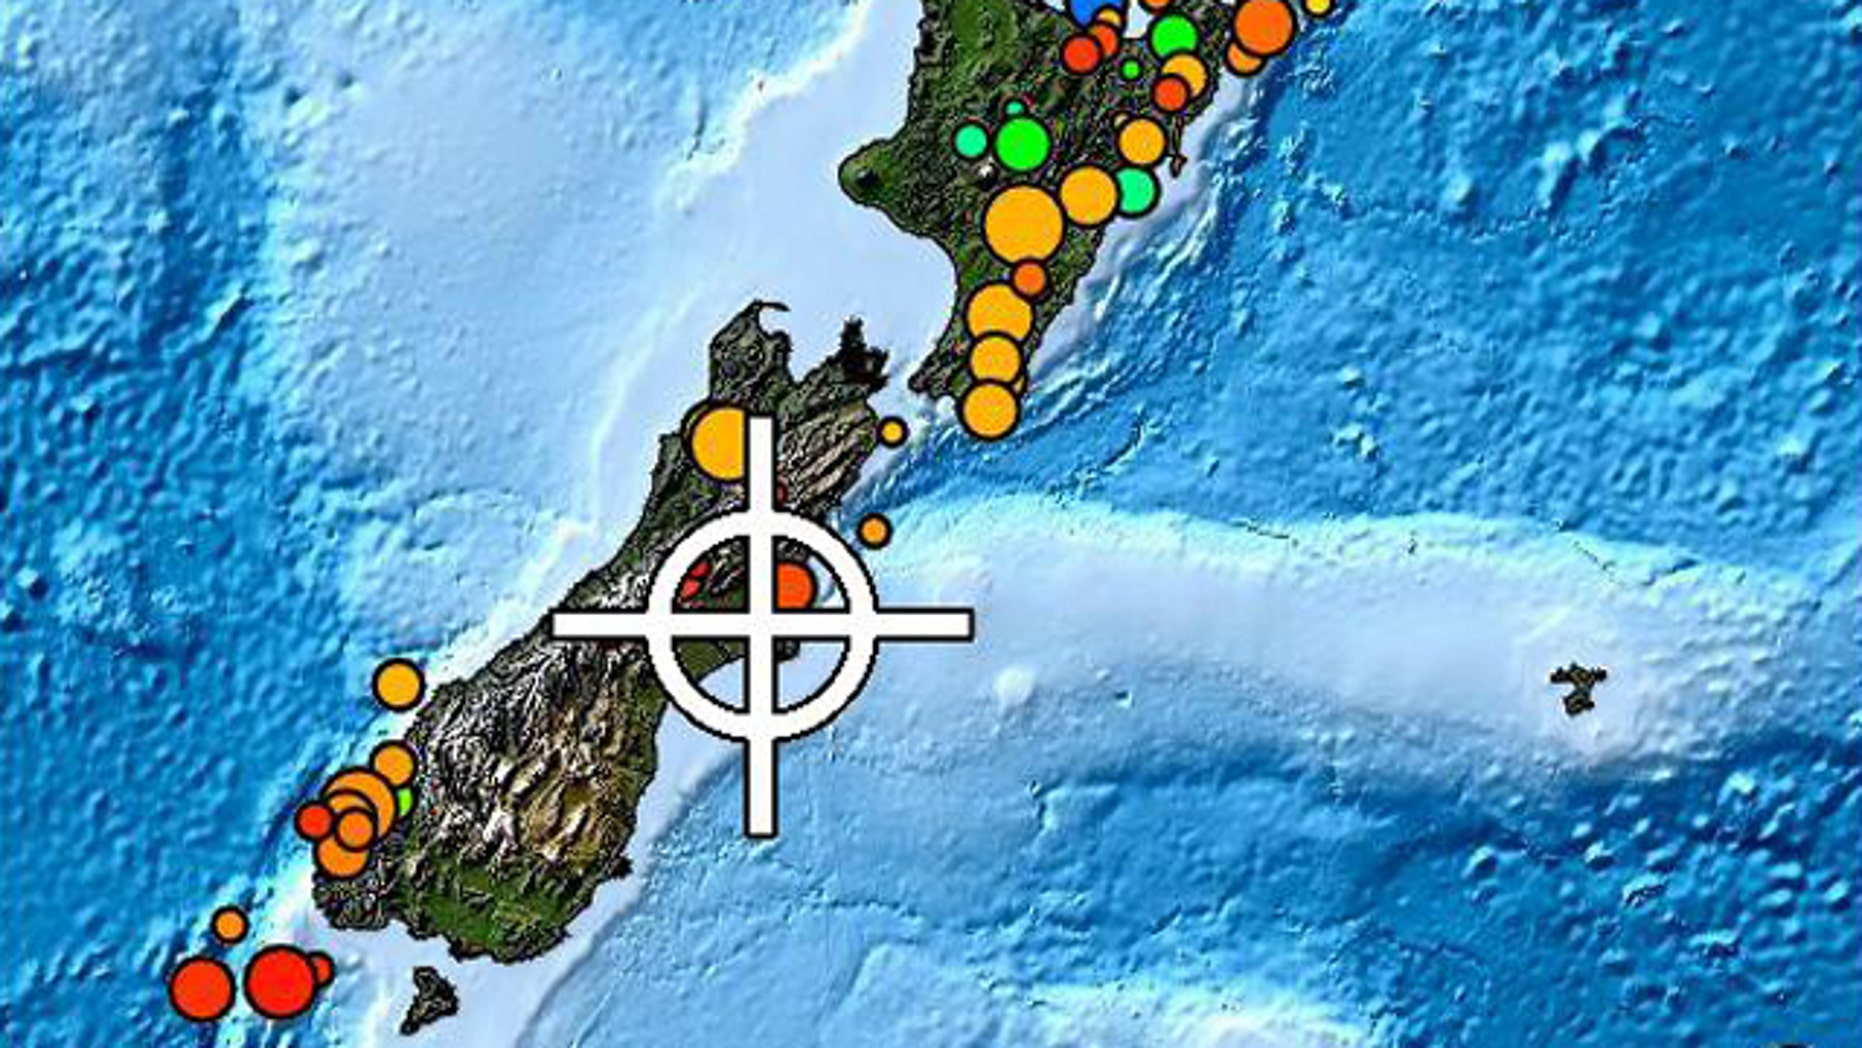 Dots indicate recent earthquakes in New Zealand, with colors and sizes showing the depth and magnitude of each.